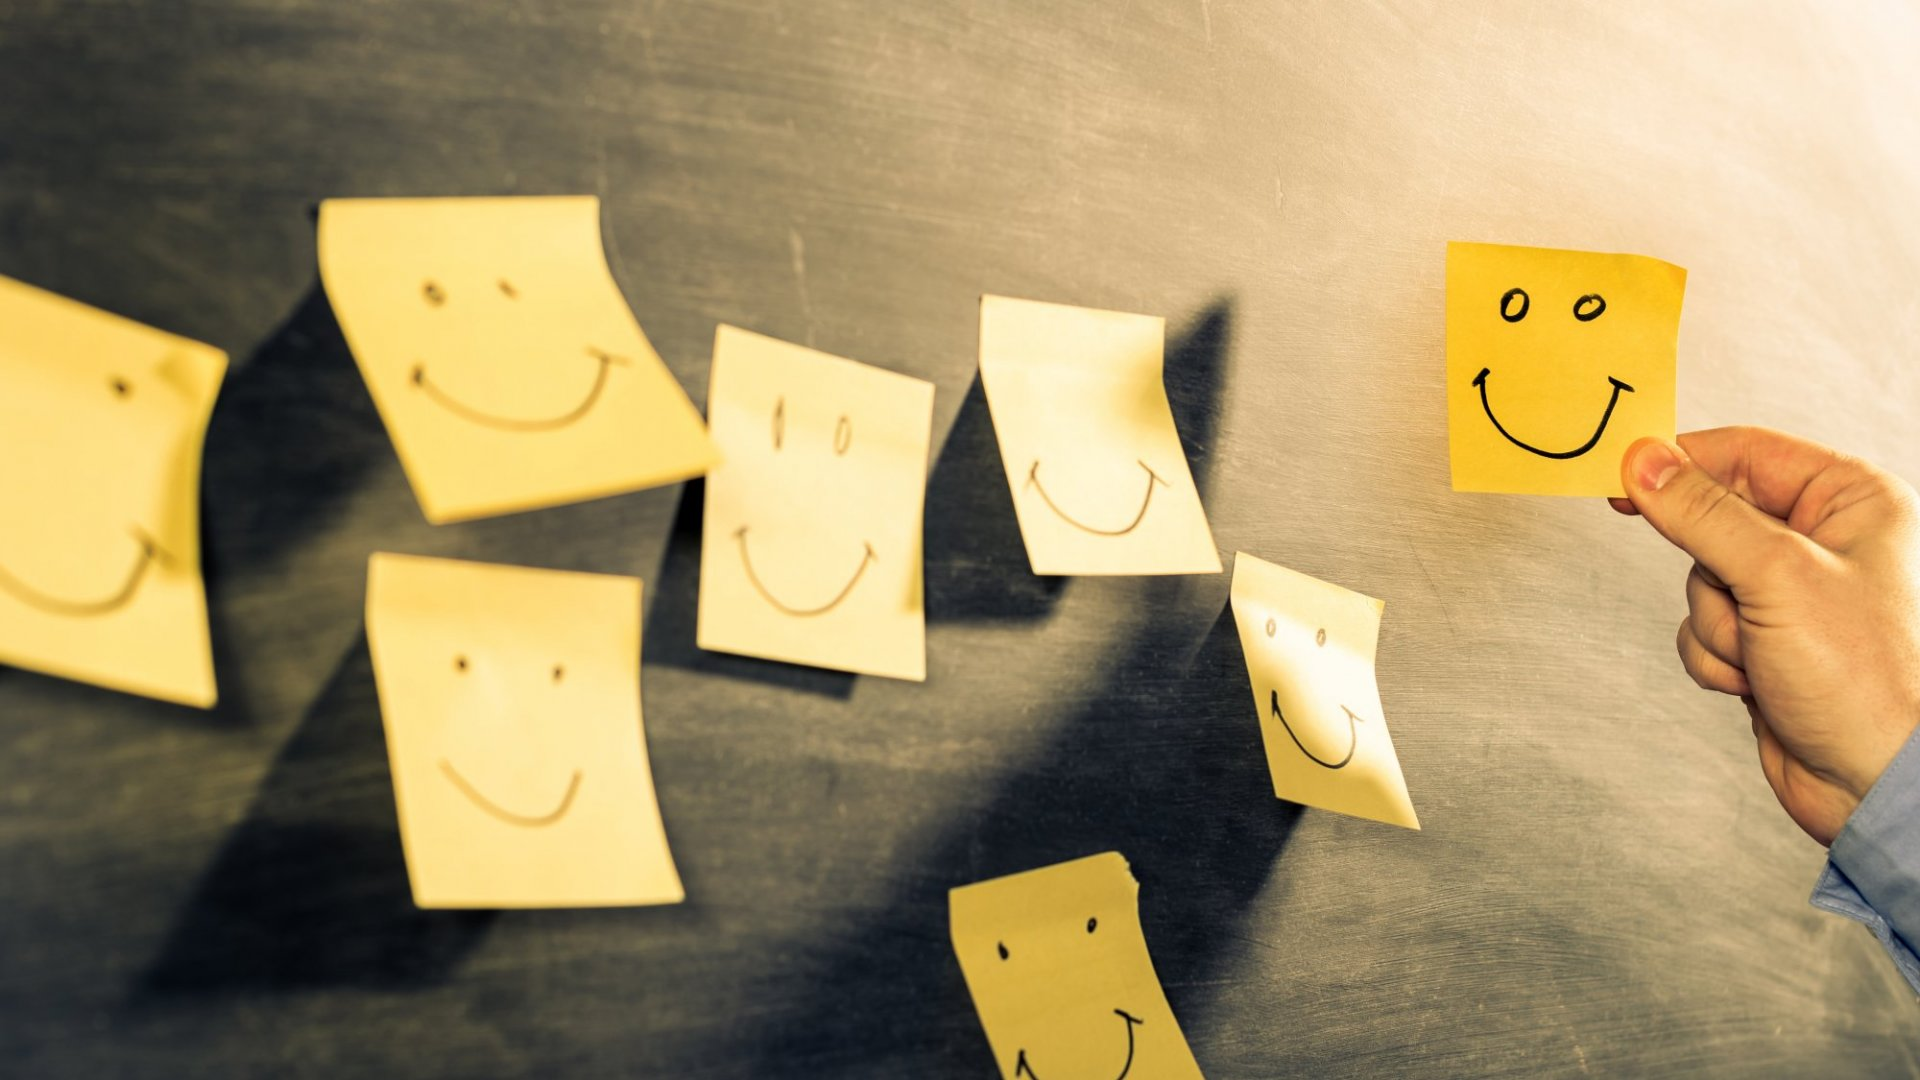 A Google Engineer Came Up With a Simple Algorithm for More Happiness